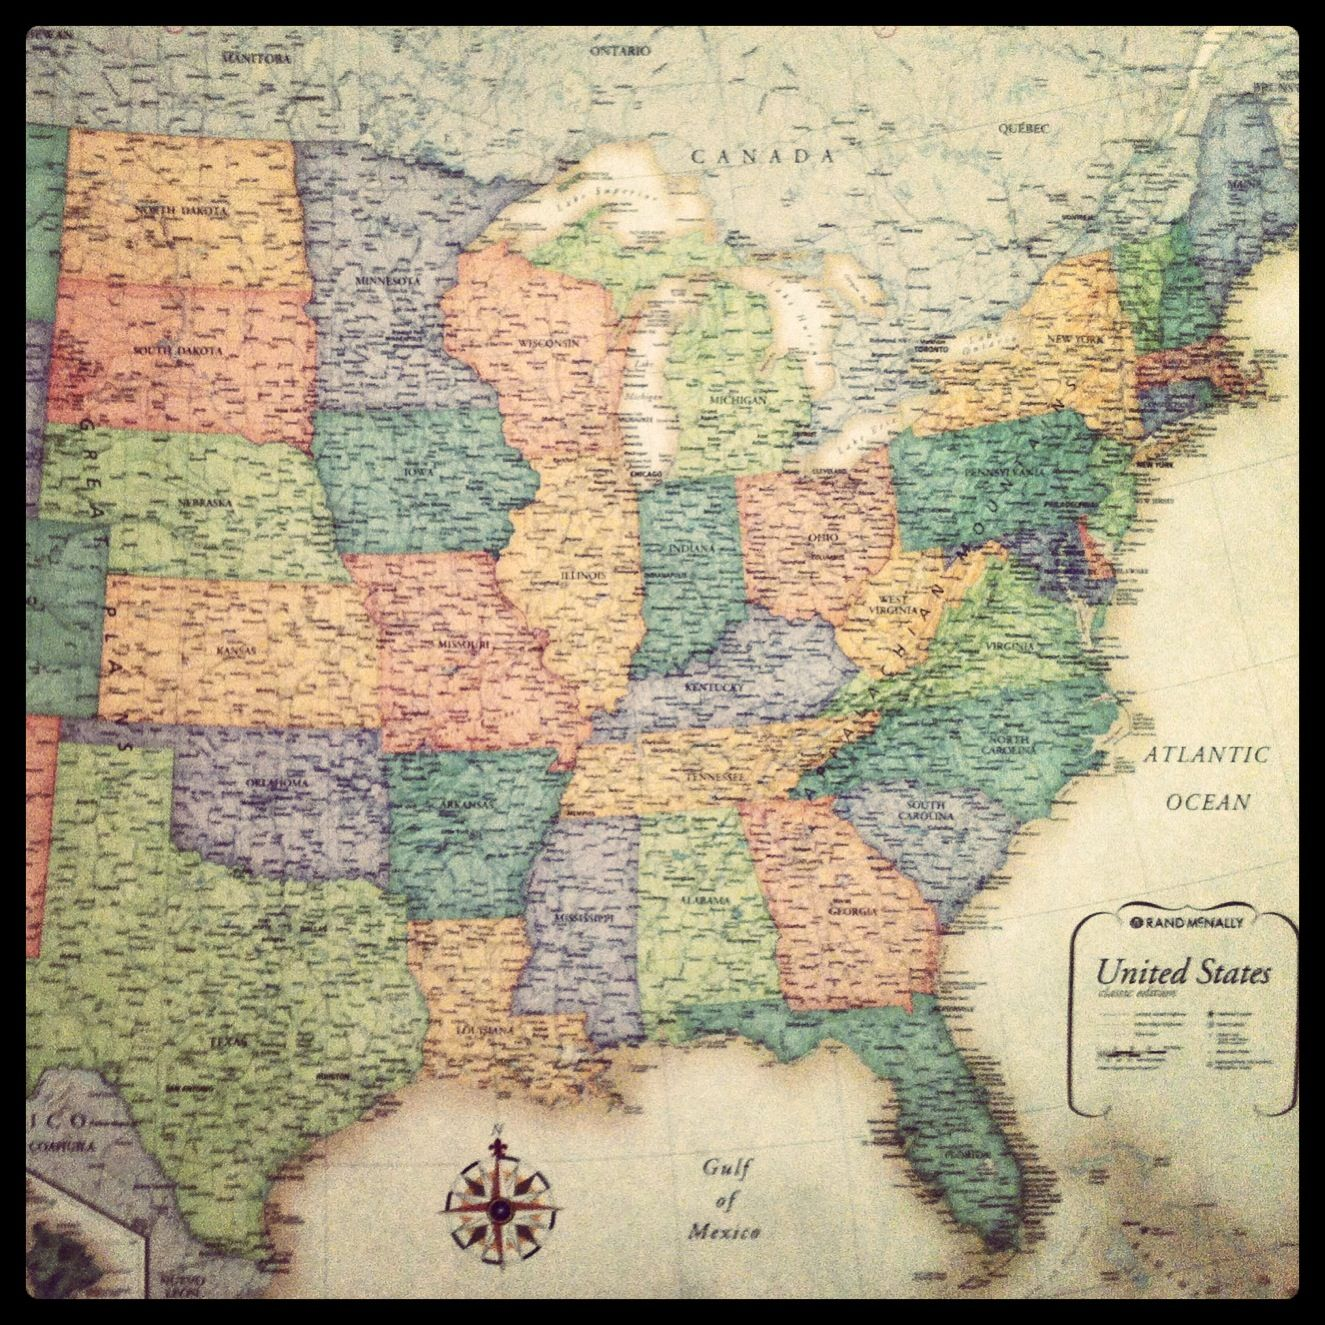 Pretty wall map of United States from Barnes & Noble for $7 ... on books and noble, barens and noble, born and noble, barnes museum philadelphia, black and noble, barnes and fisher, barnesand noble, barnes book, barnes and opel, barnes hospital st. louis, bron and noble, barns n noble, barnes and nobel, barron and noble, noble and noble, brooks and noble, barnes and barnes,